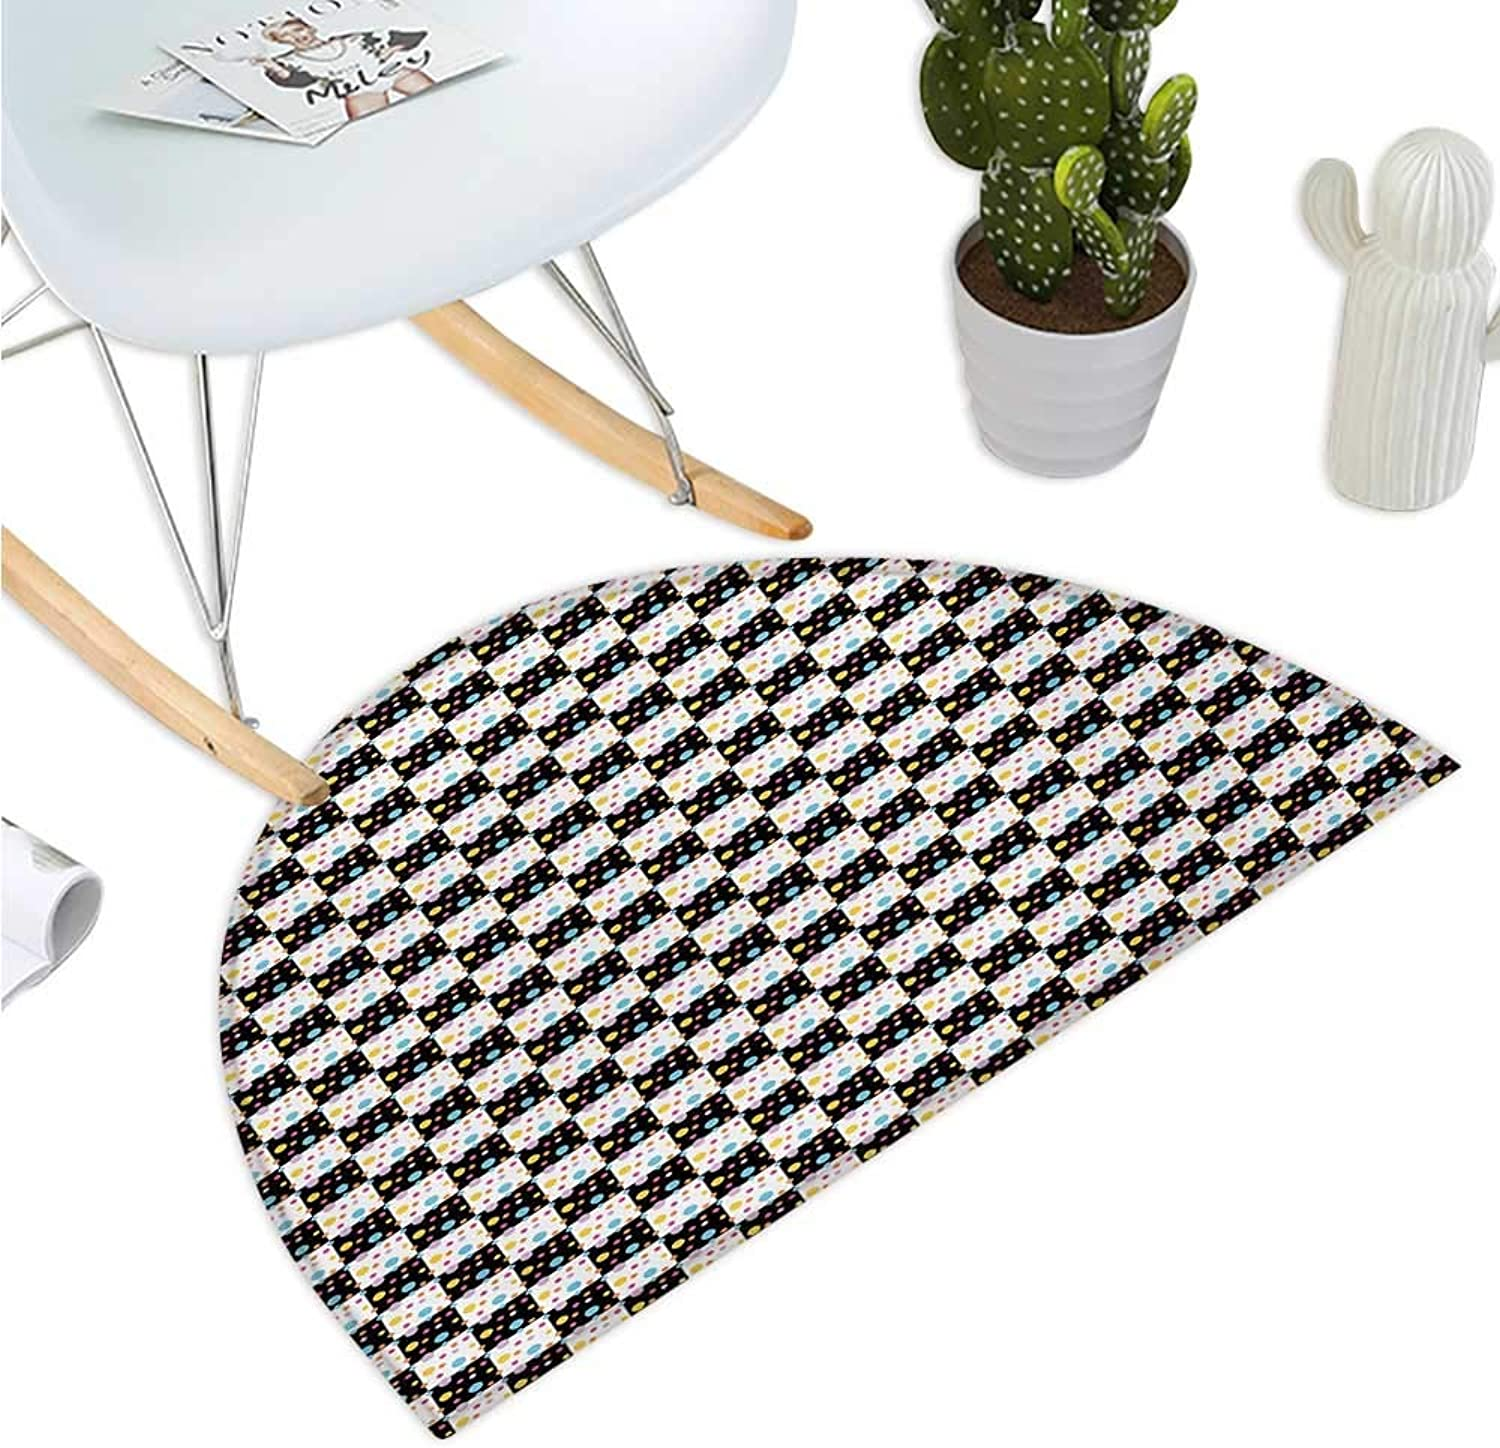 colorful Half Round Door mats Black and White Checkered Pattern with Lively colord Dots Modern Geometric Tile Bathroom Mat H 51.1  xD 76.7  Multicolor